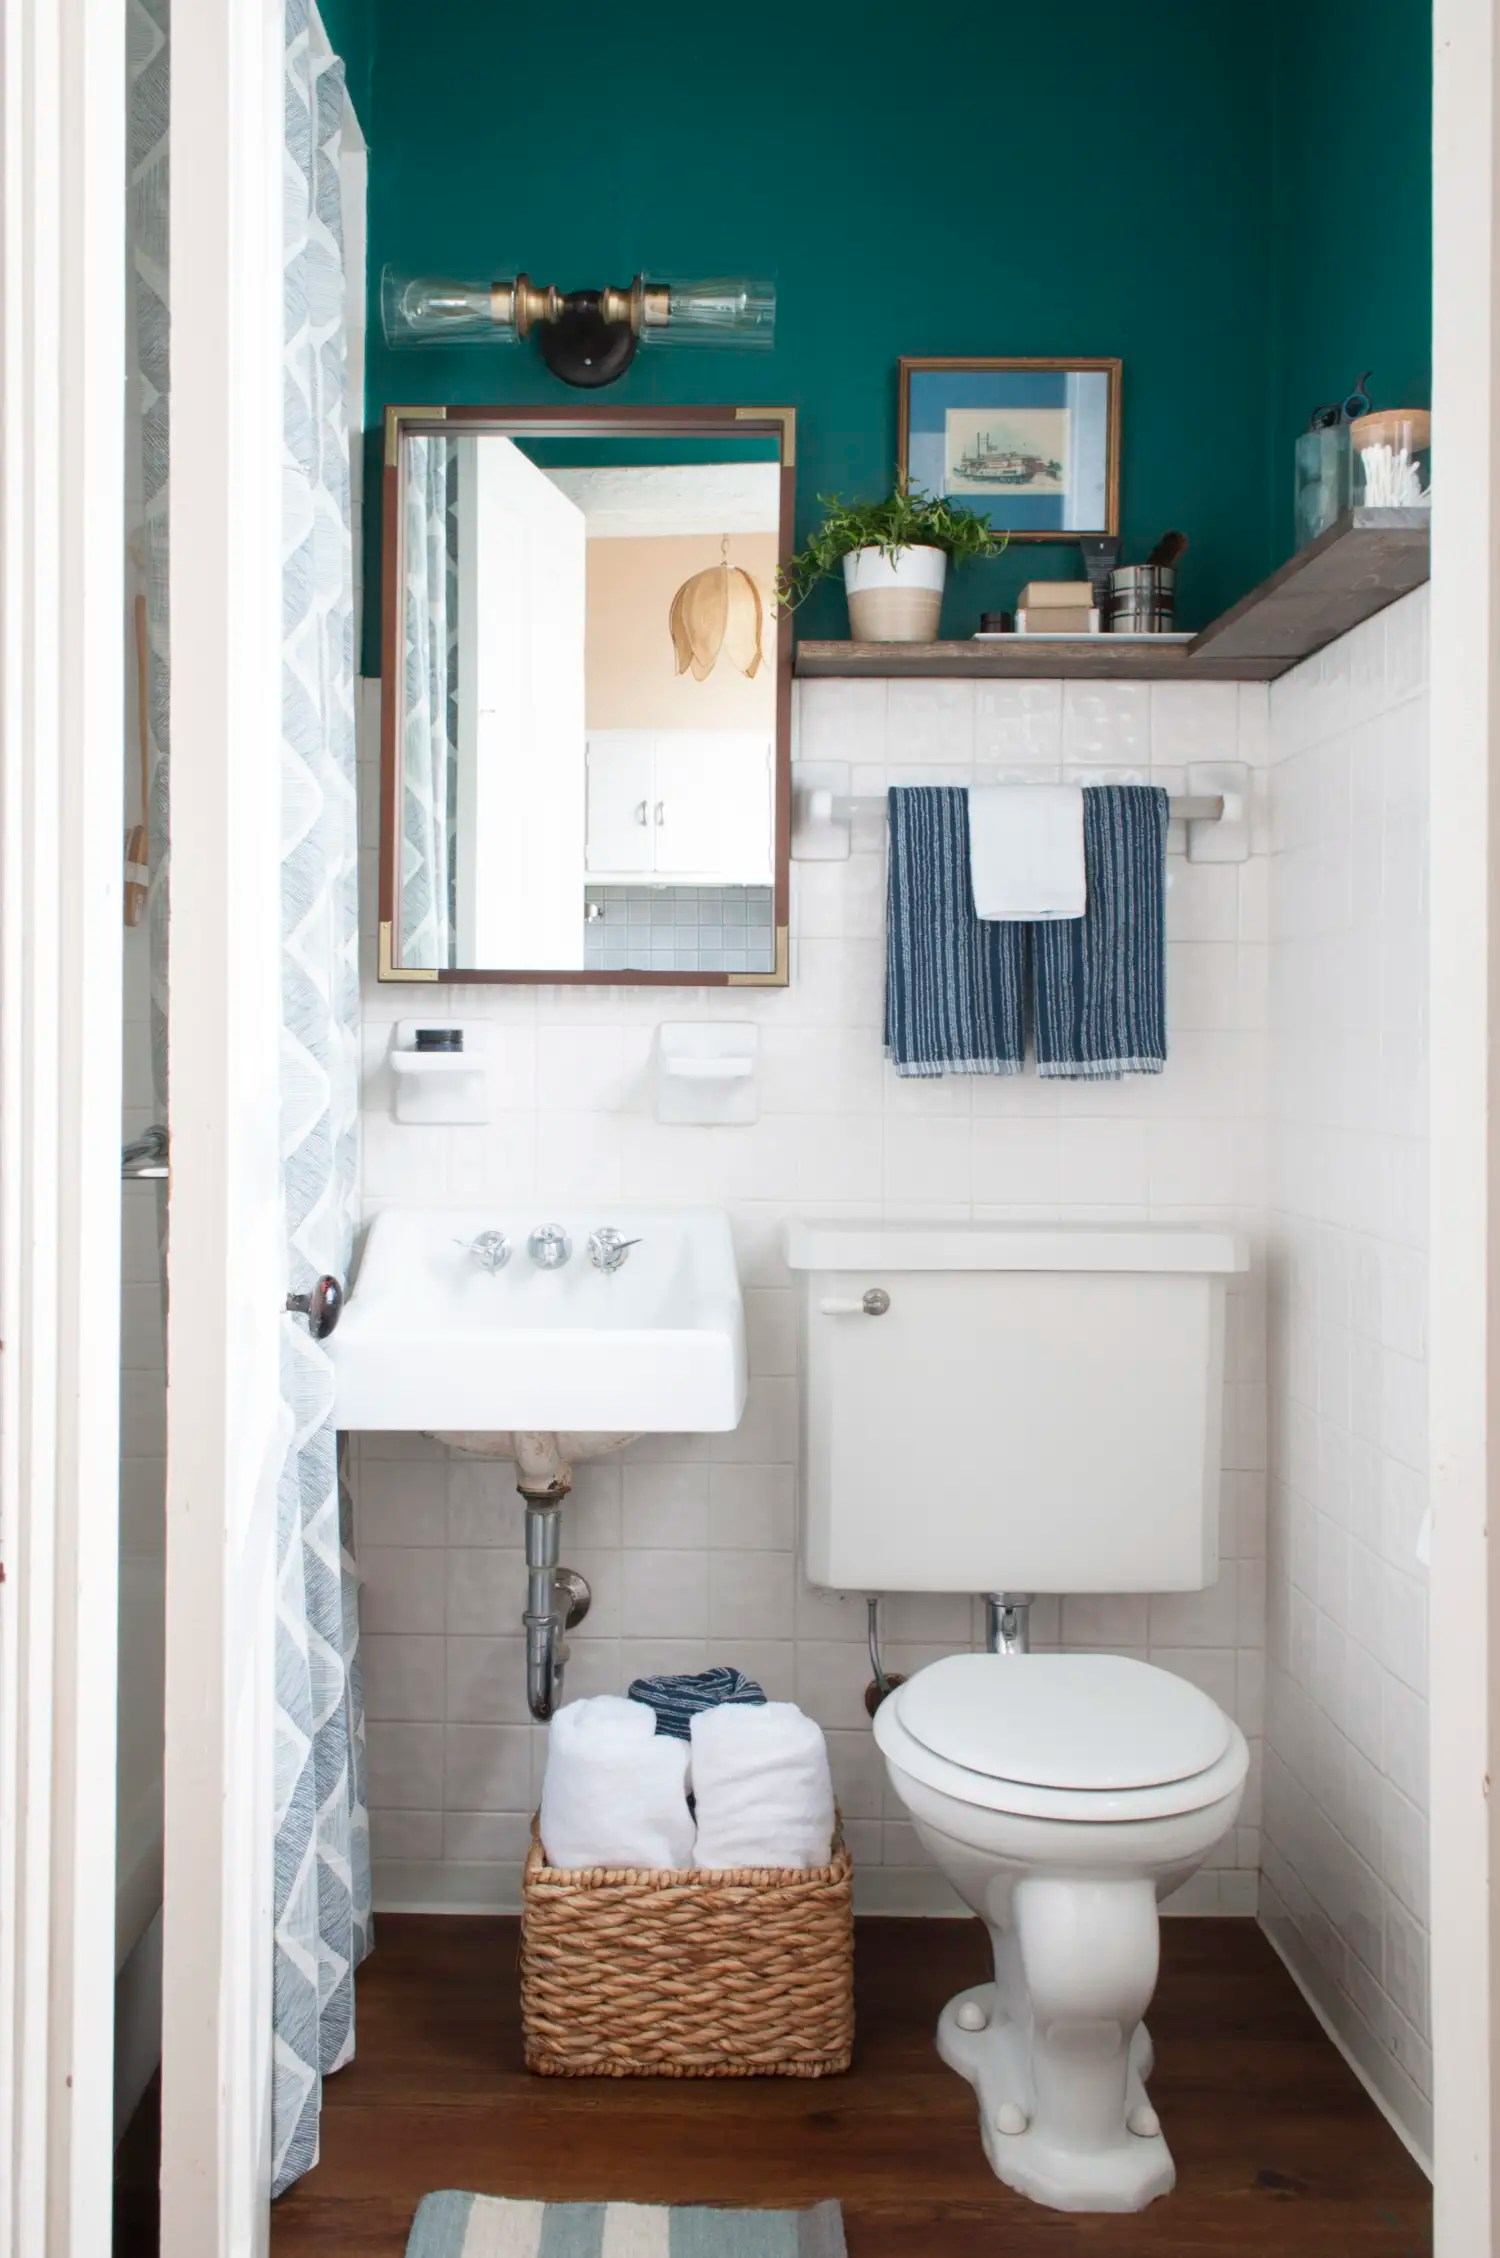 8 Stylish Solutions for Your Totally Icky Rental Bathroom ... on Apartment Bathroom  id=93560